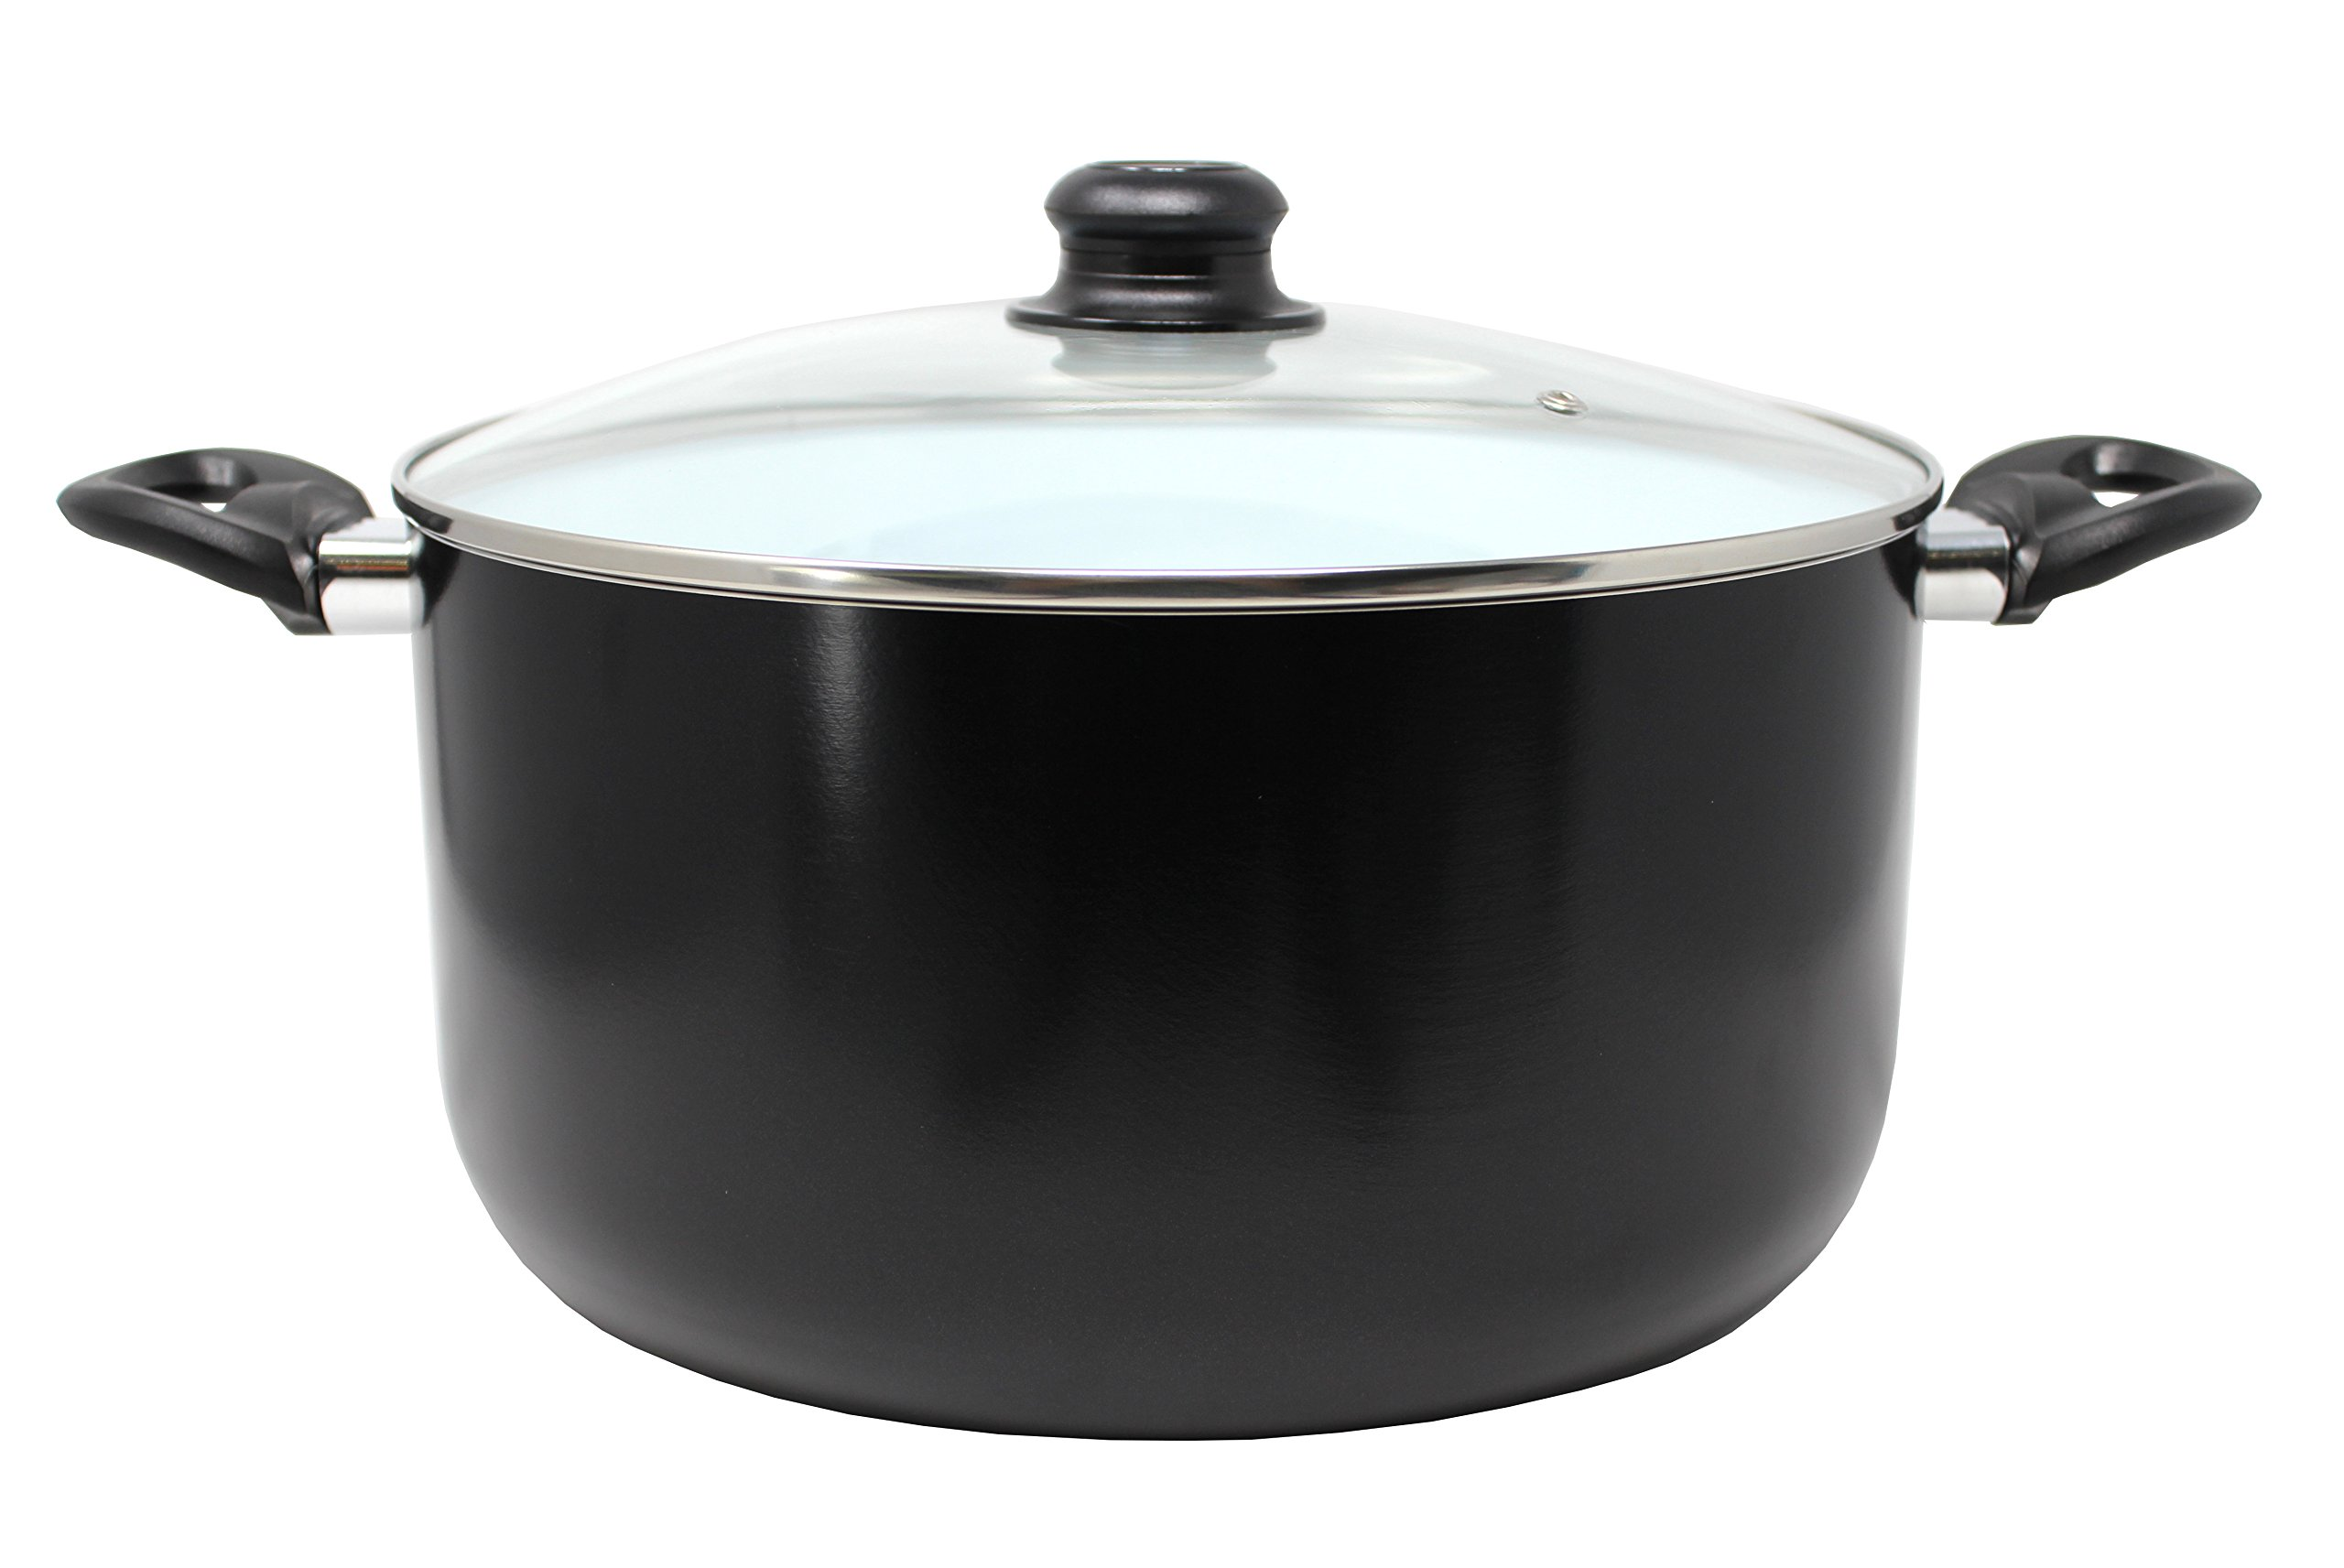 Concord 10 Quart Nonstick Ceramic Dutch Oven Cookware